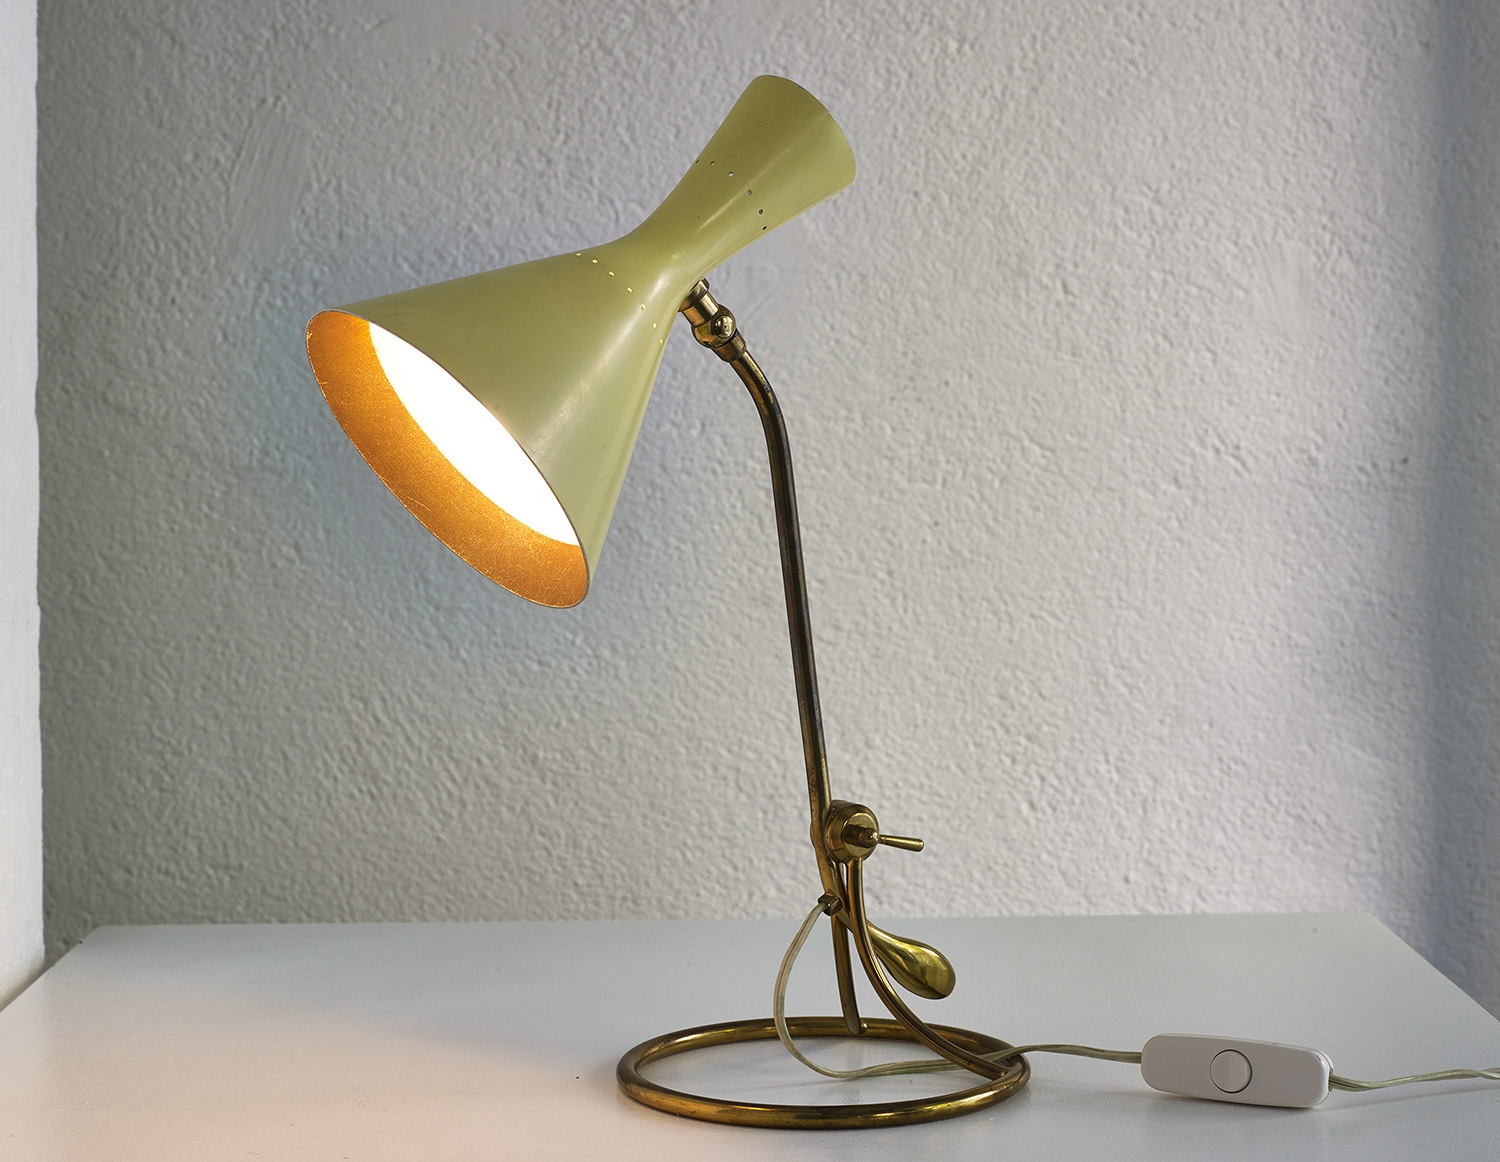 counterweight-table-lamp-by-baumann-kolliker-image-02